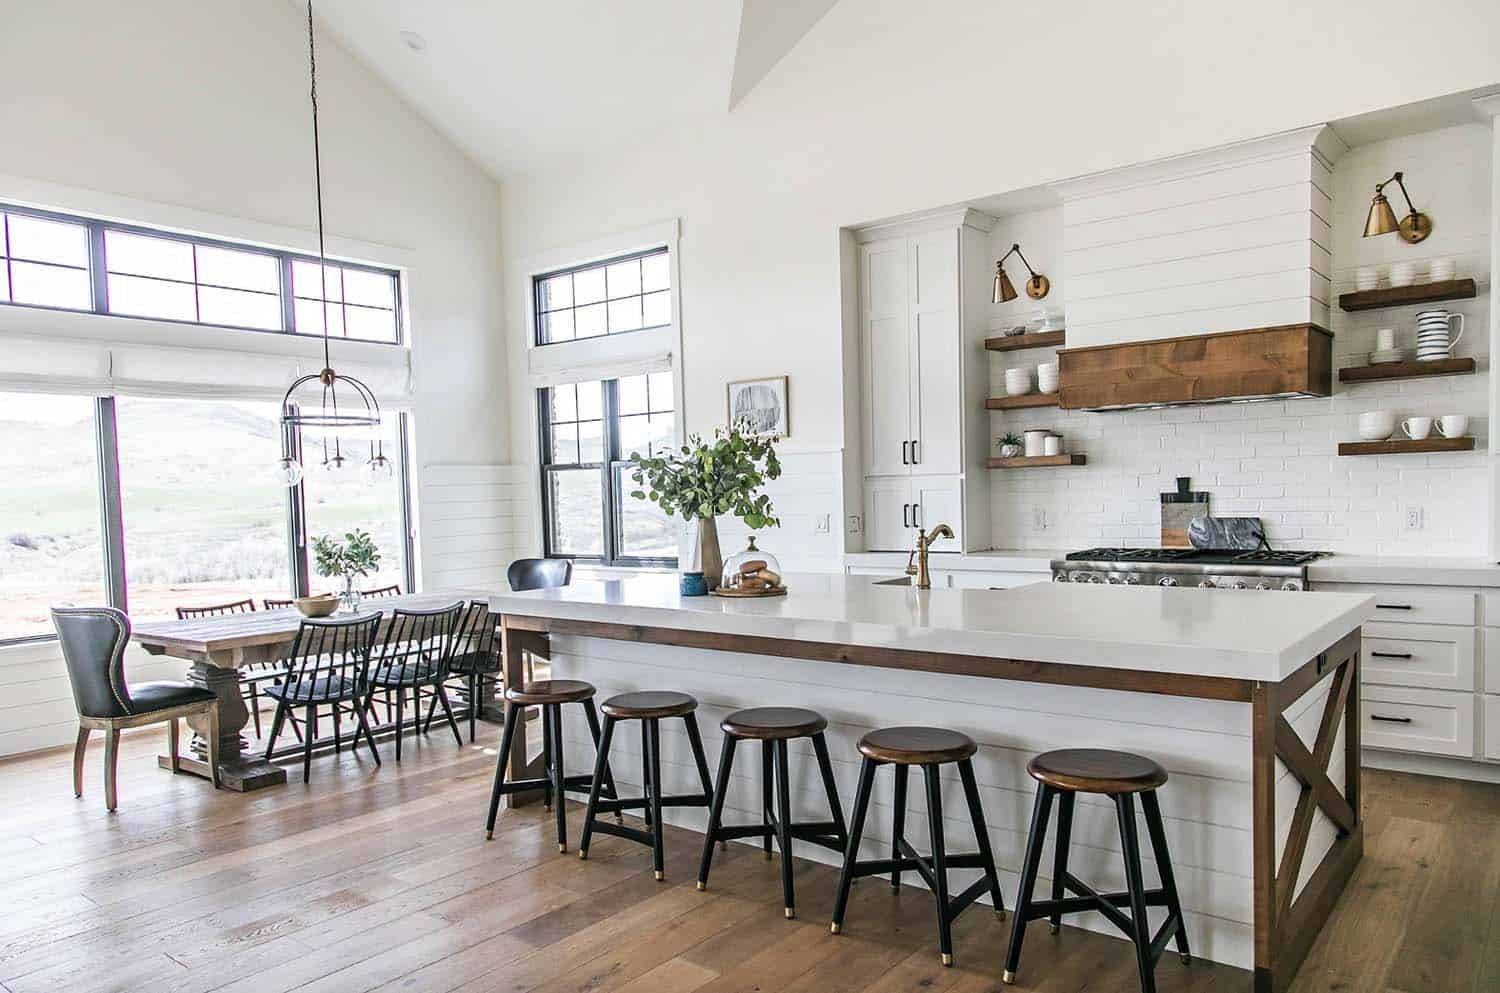 Modern farmhouse style in utah features stylish living spaces for Small modern farmhouse